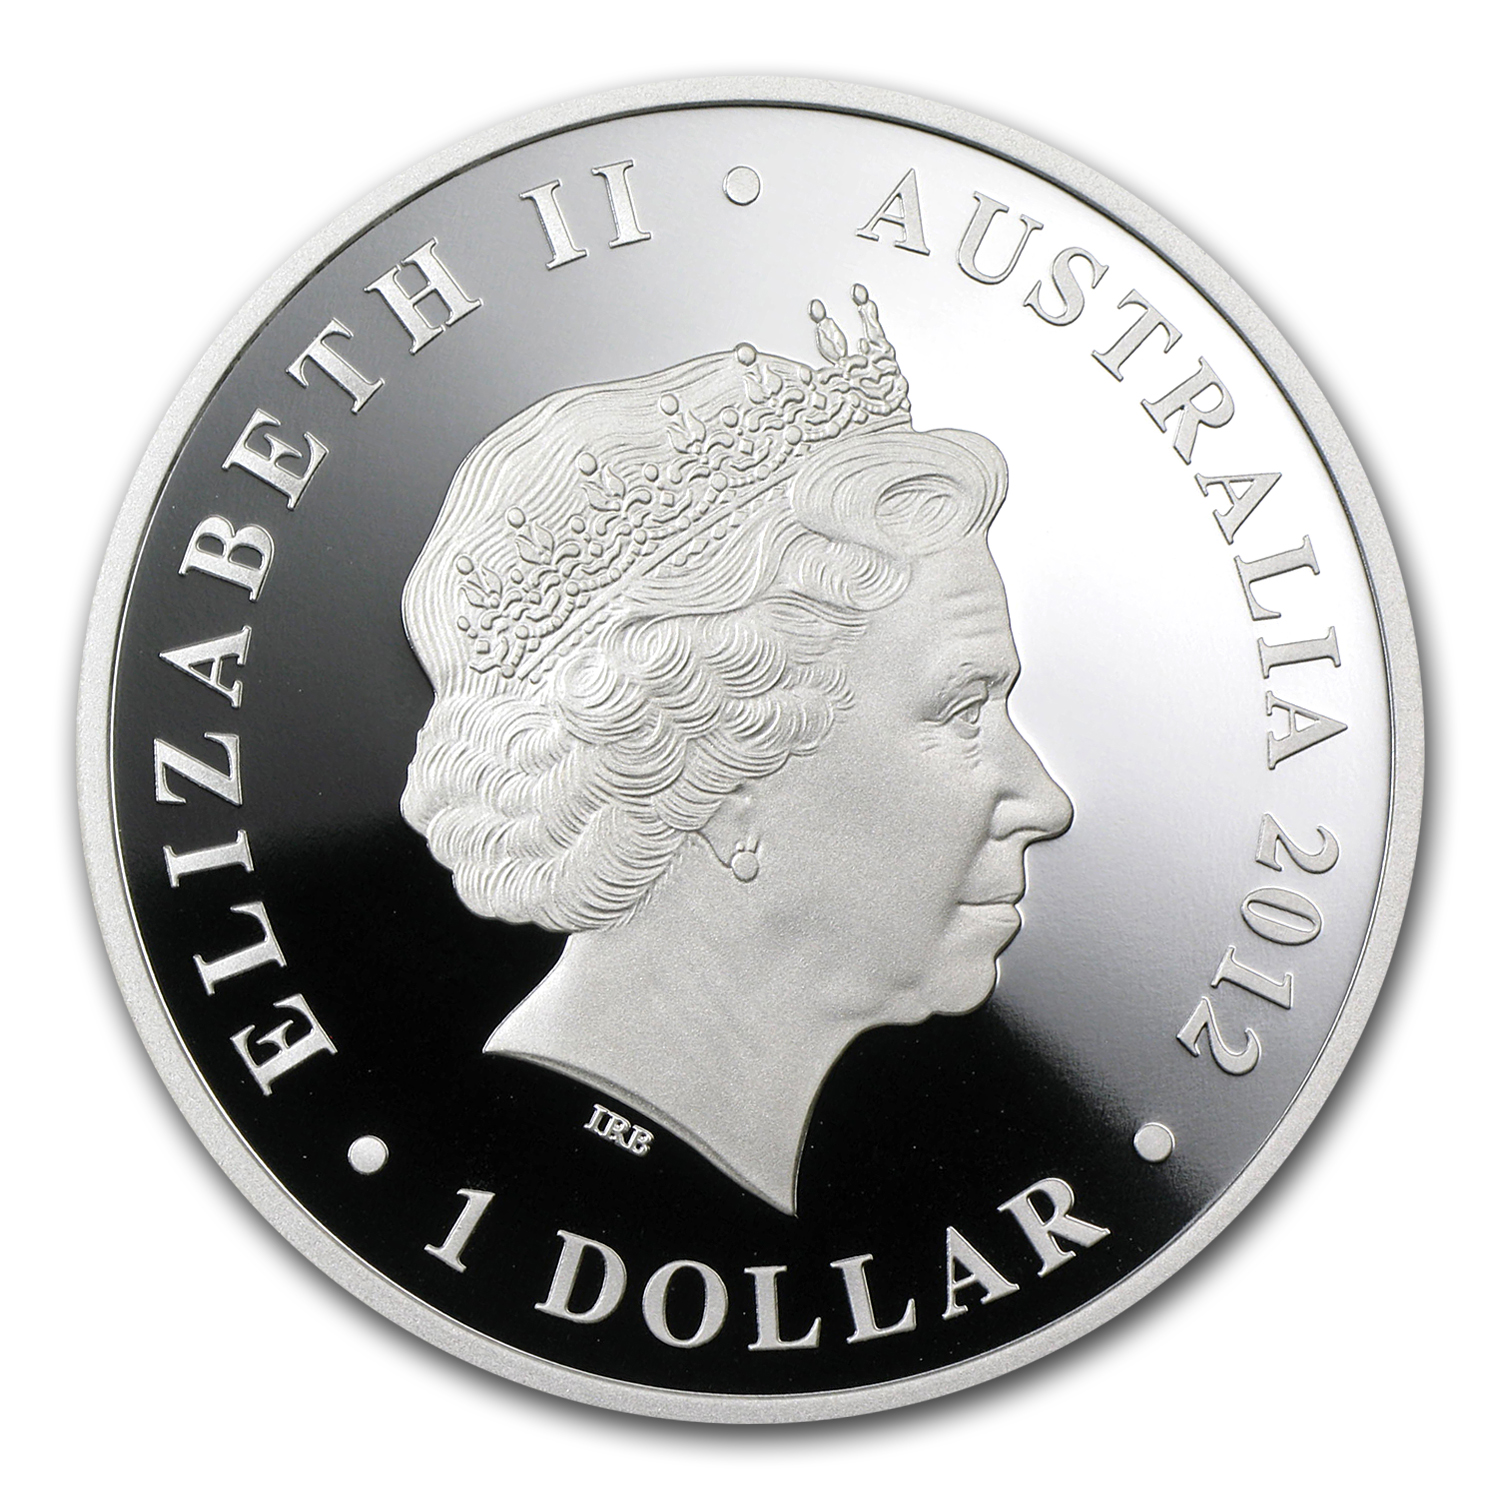 2012 Australia 1 oz Silver Shark Bay Proof (ANDA )